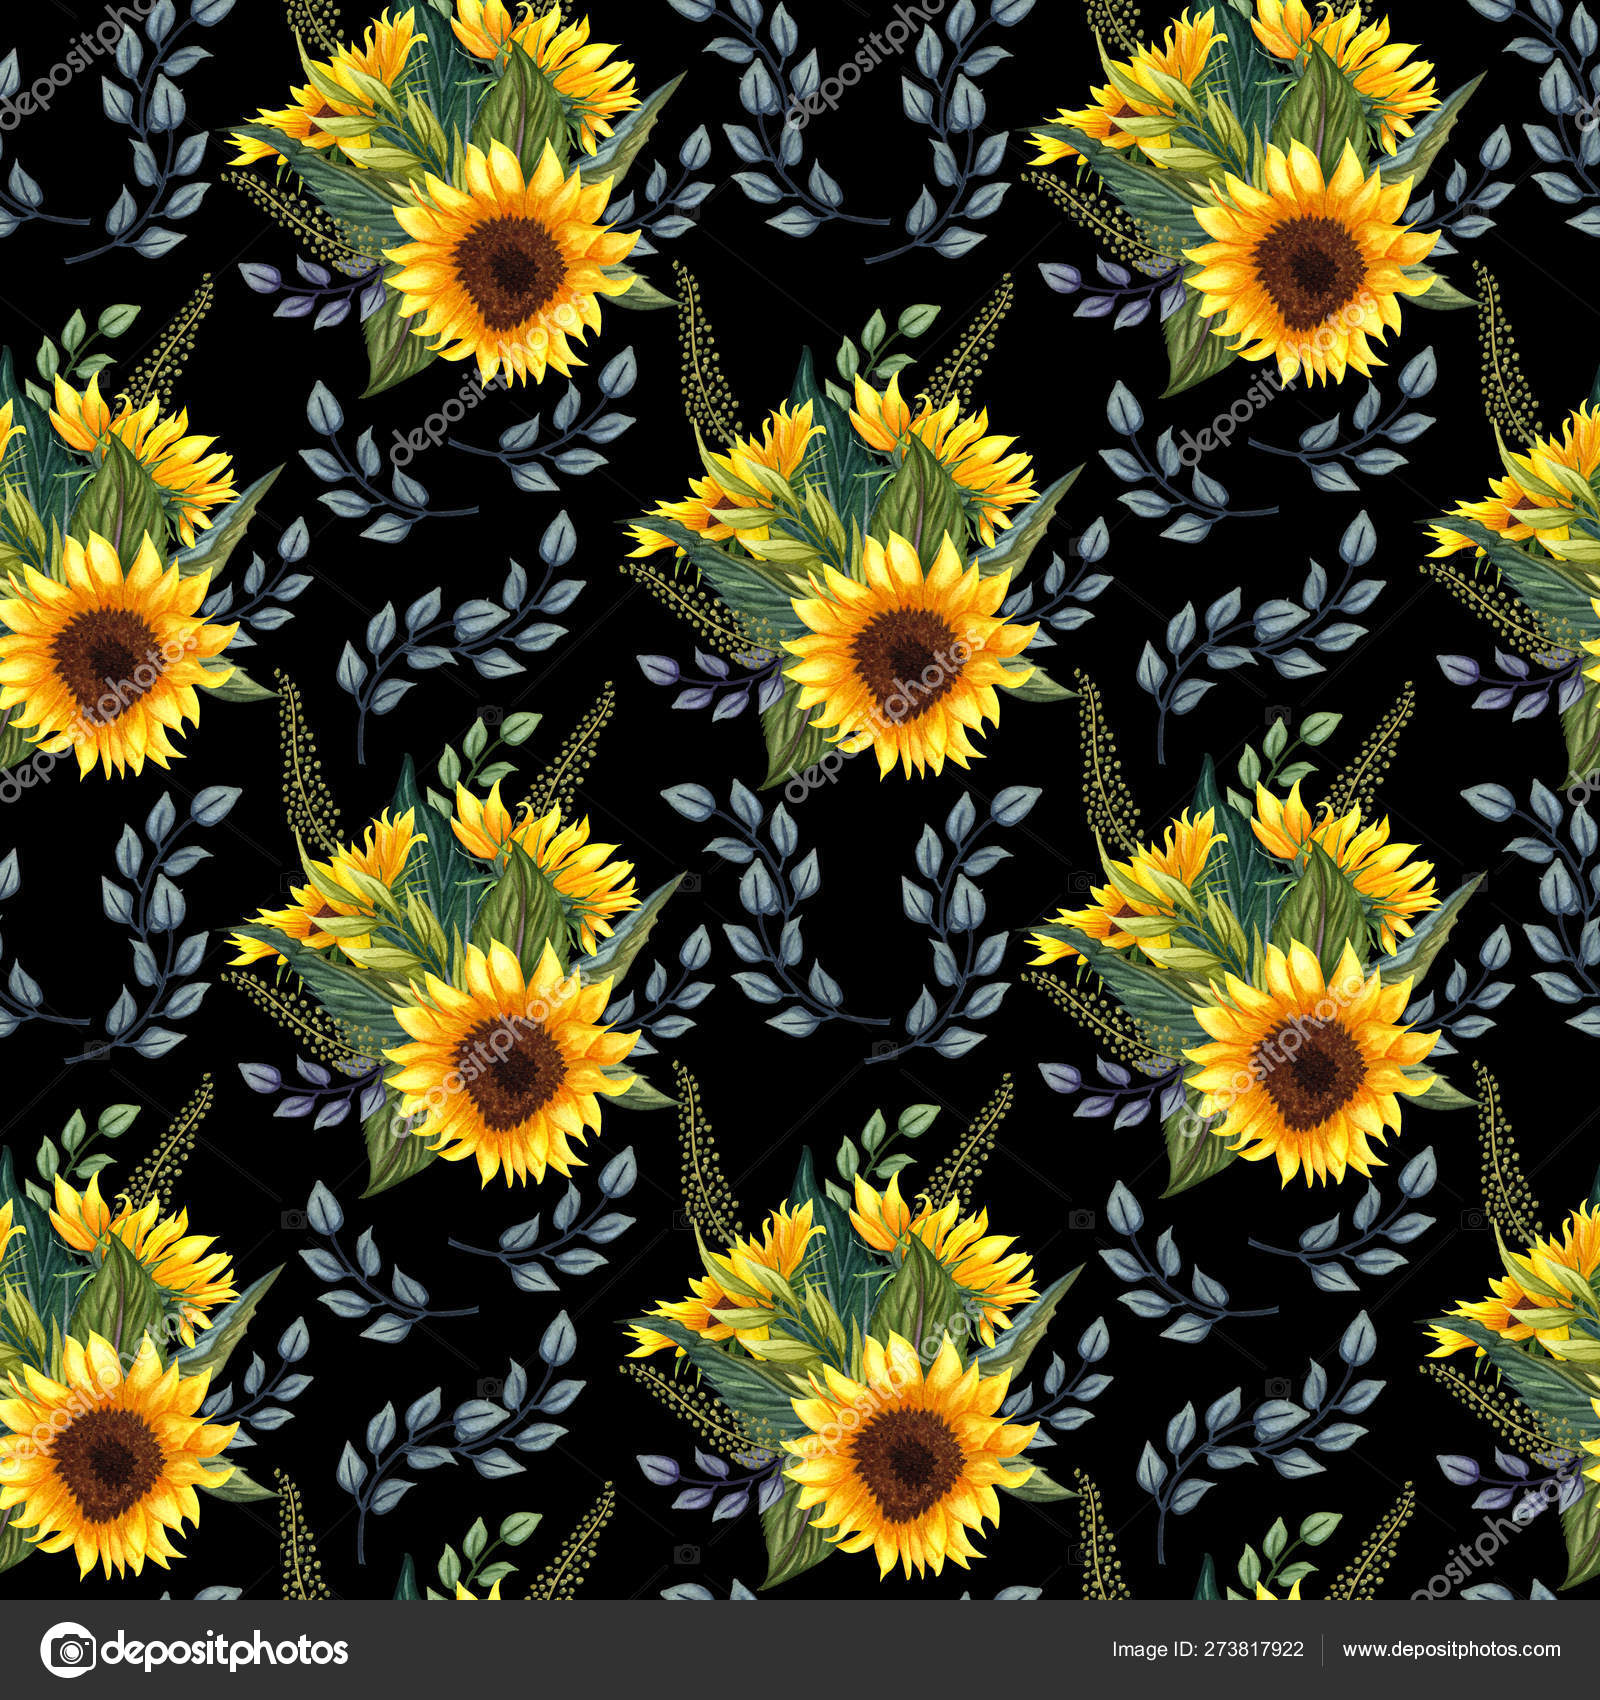 depositphotos 273817922 stock photo seamless pattern with sunflowers on